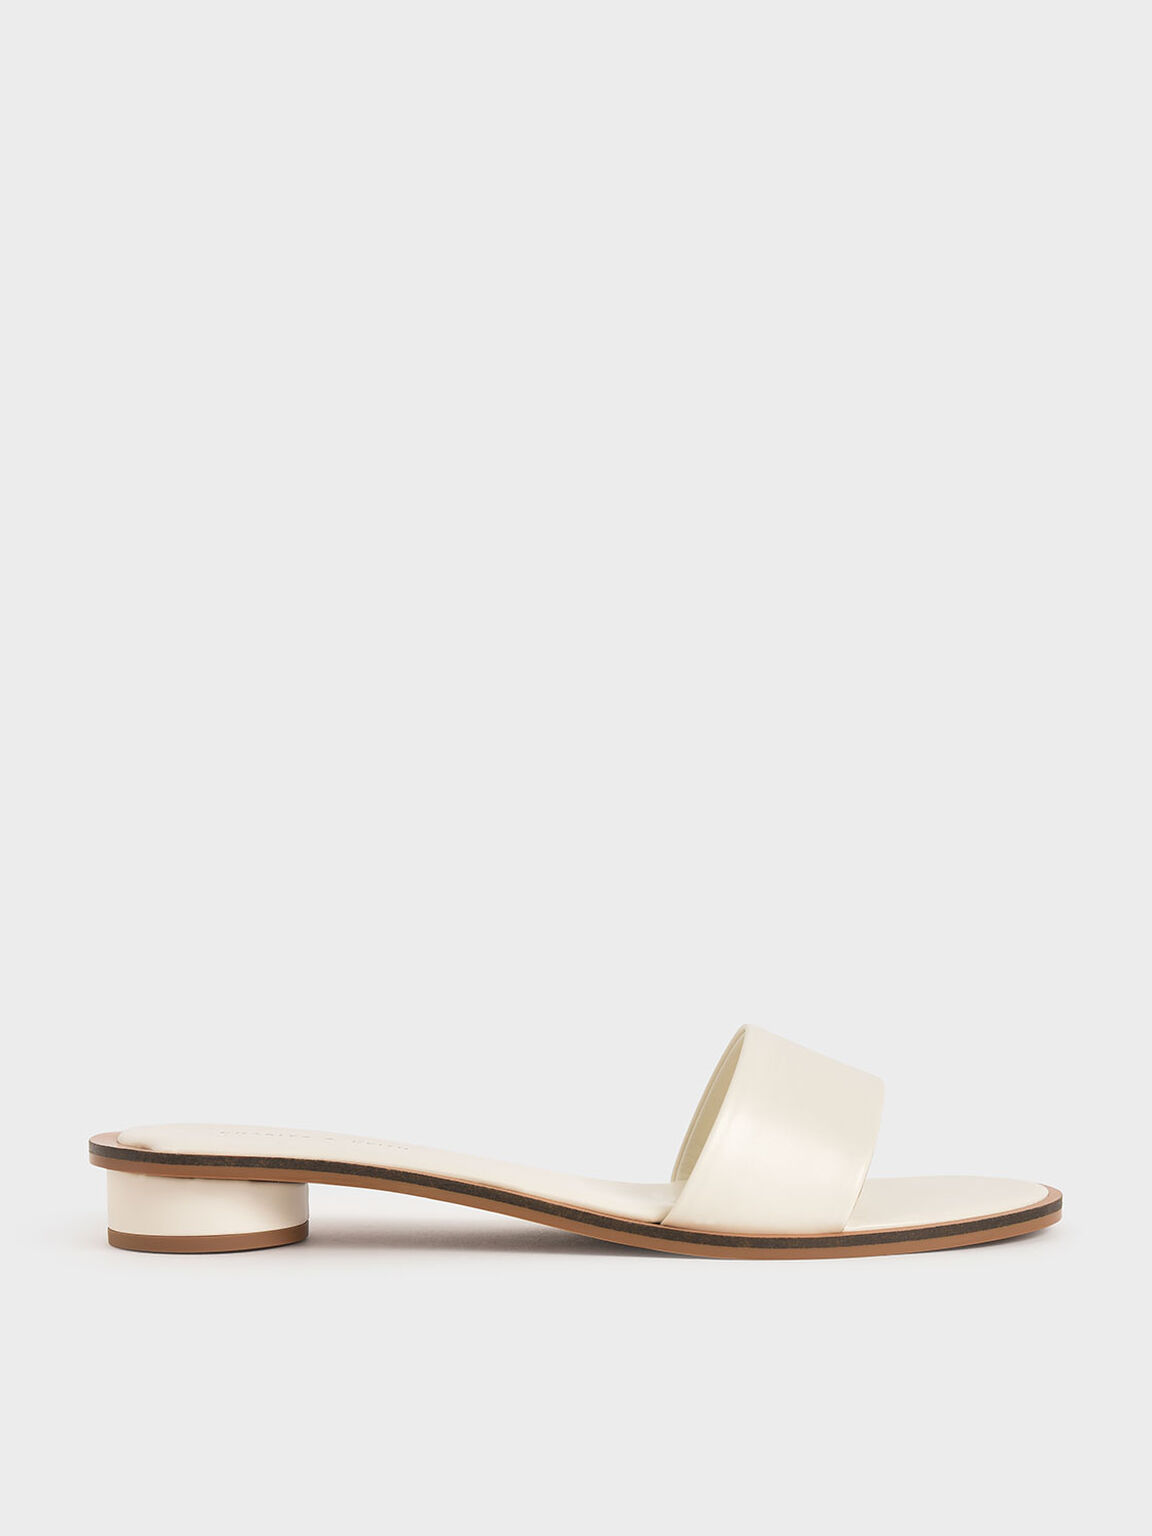 Two-Tone Slide Sandals, Cream, hi-res